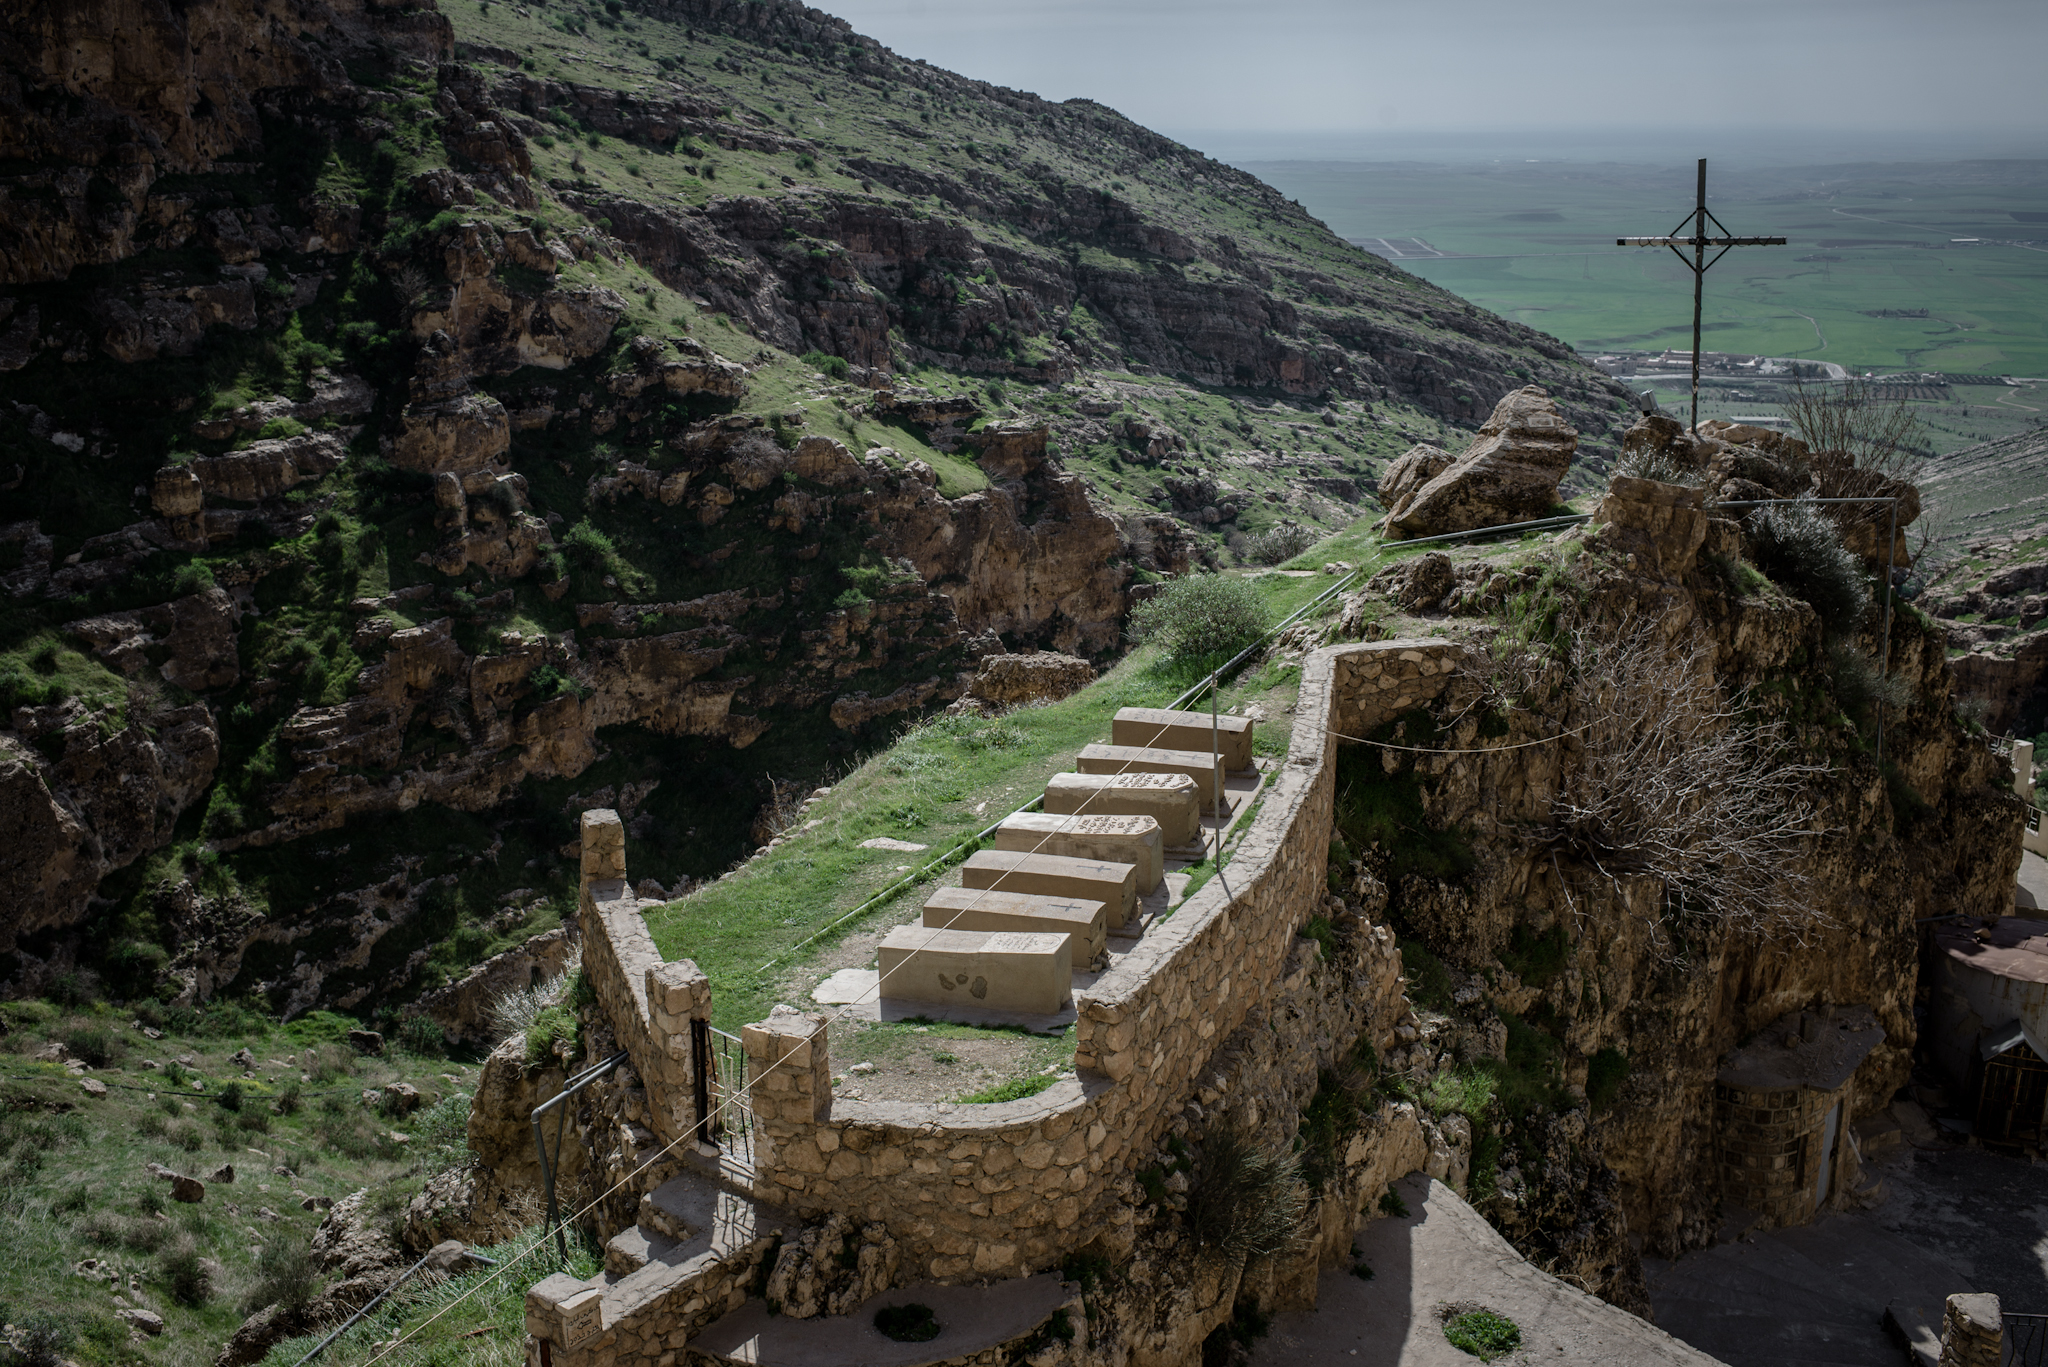 Rabban Hormizd Monastery near Alqosh, Iraq, February 27, 2016.